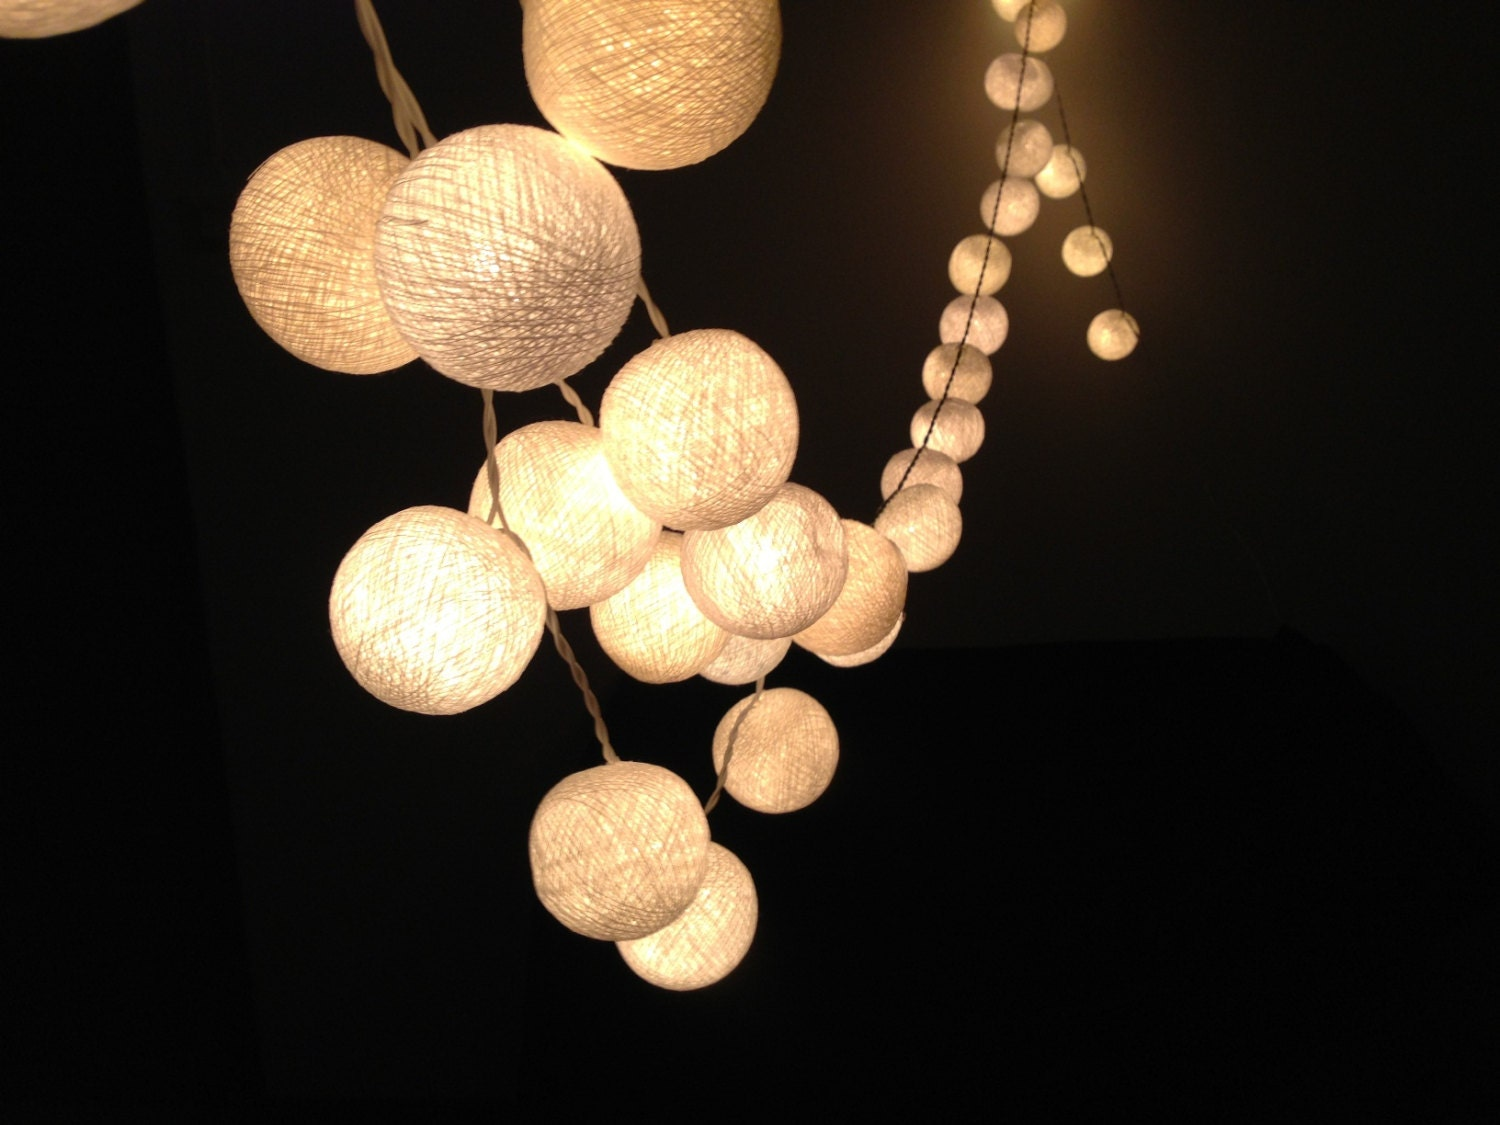 White String Garden Lights : White cotton ball string lights for PatioWeddingParty and